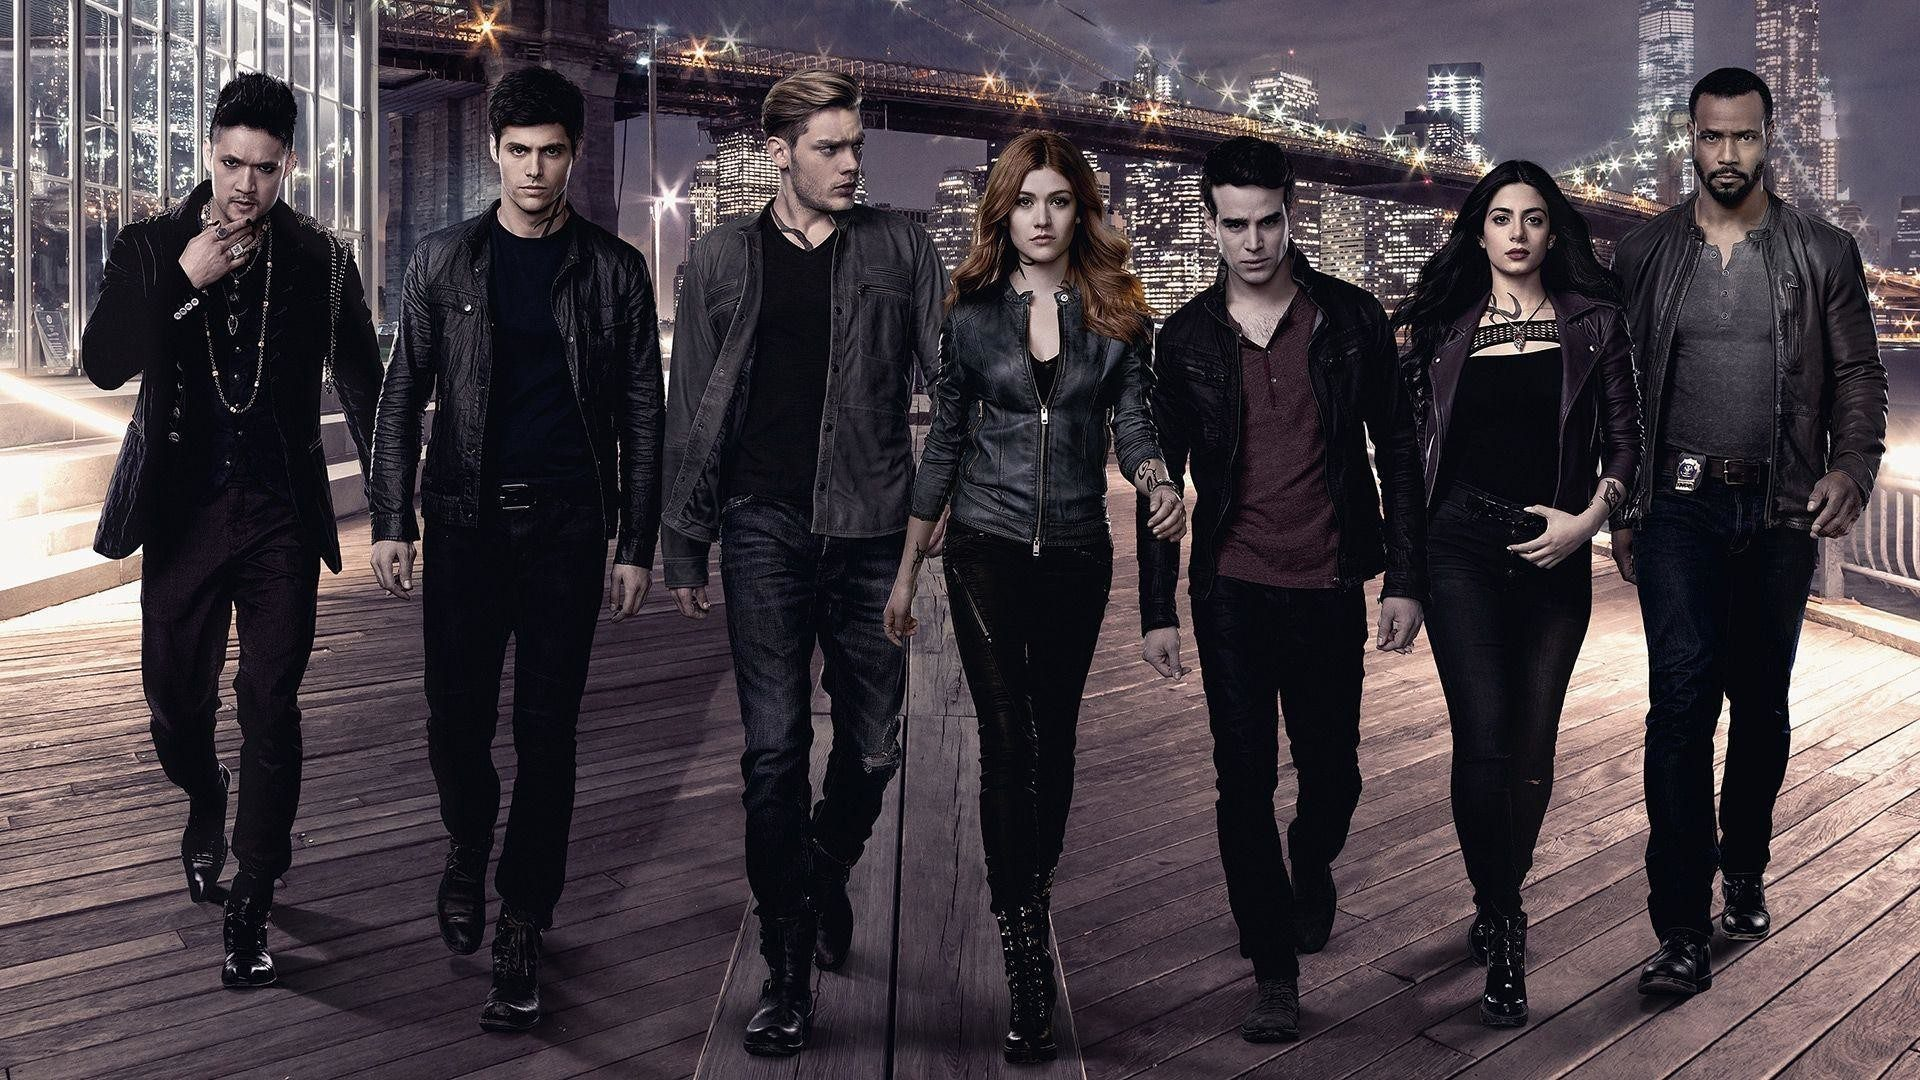 'Shadowhunters' is a pillar for inclusivity, so why has it been axed?